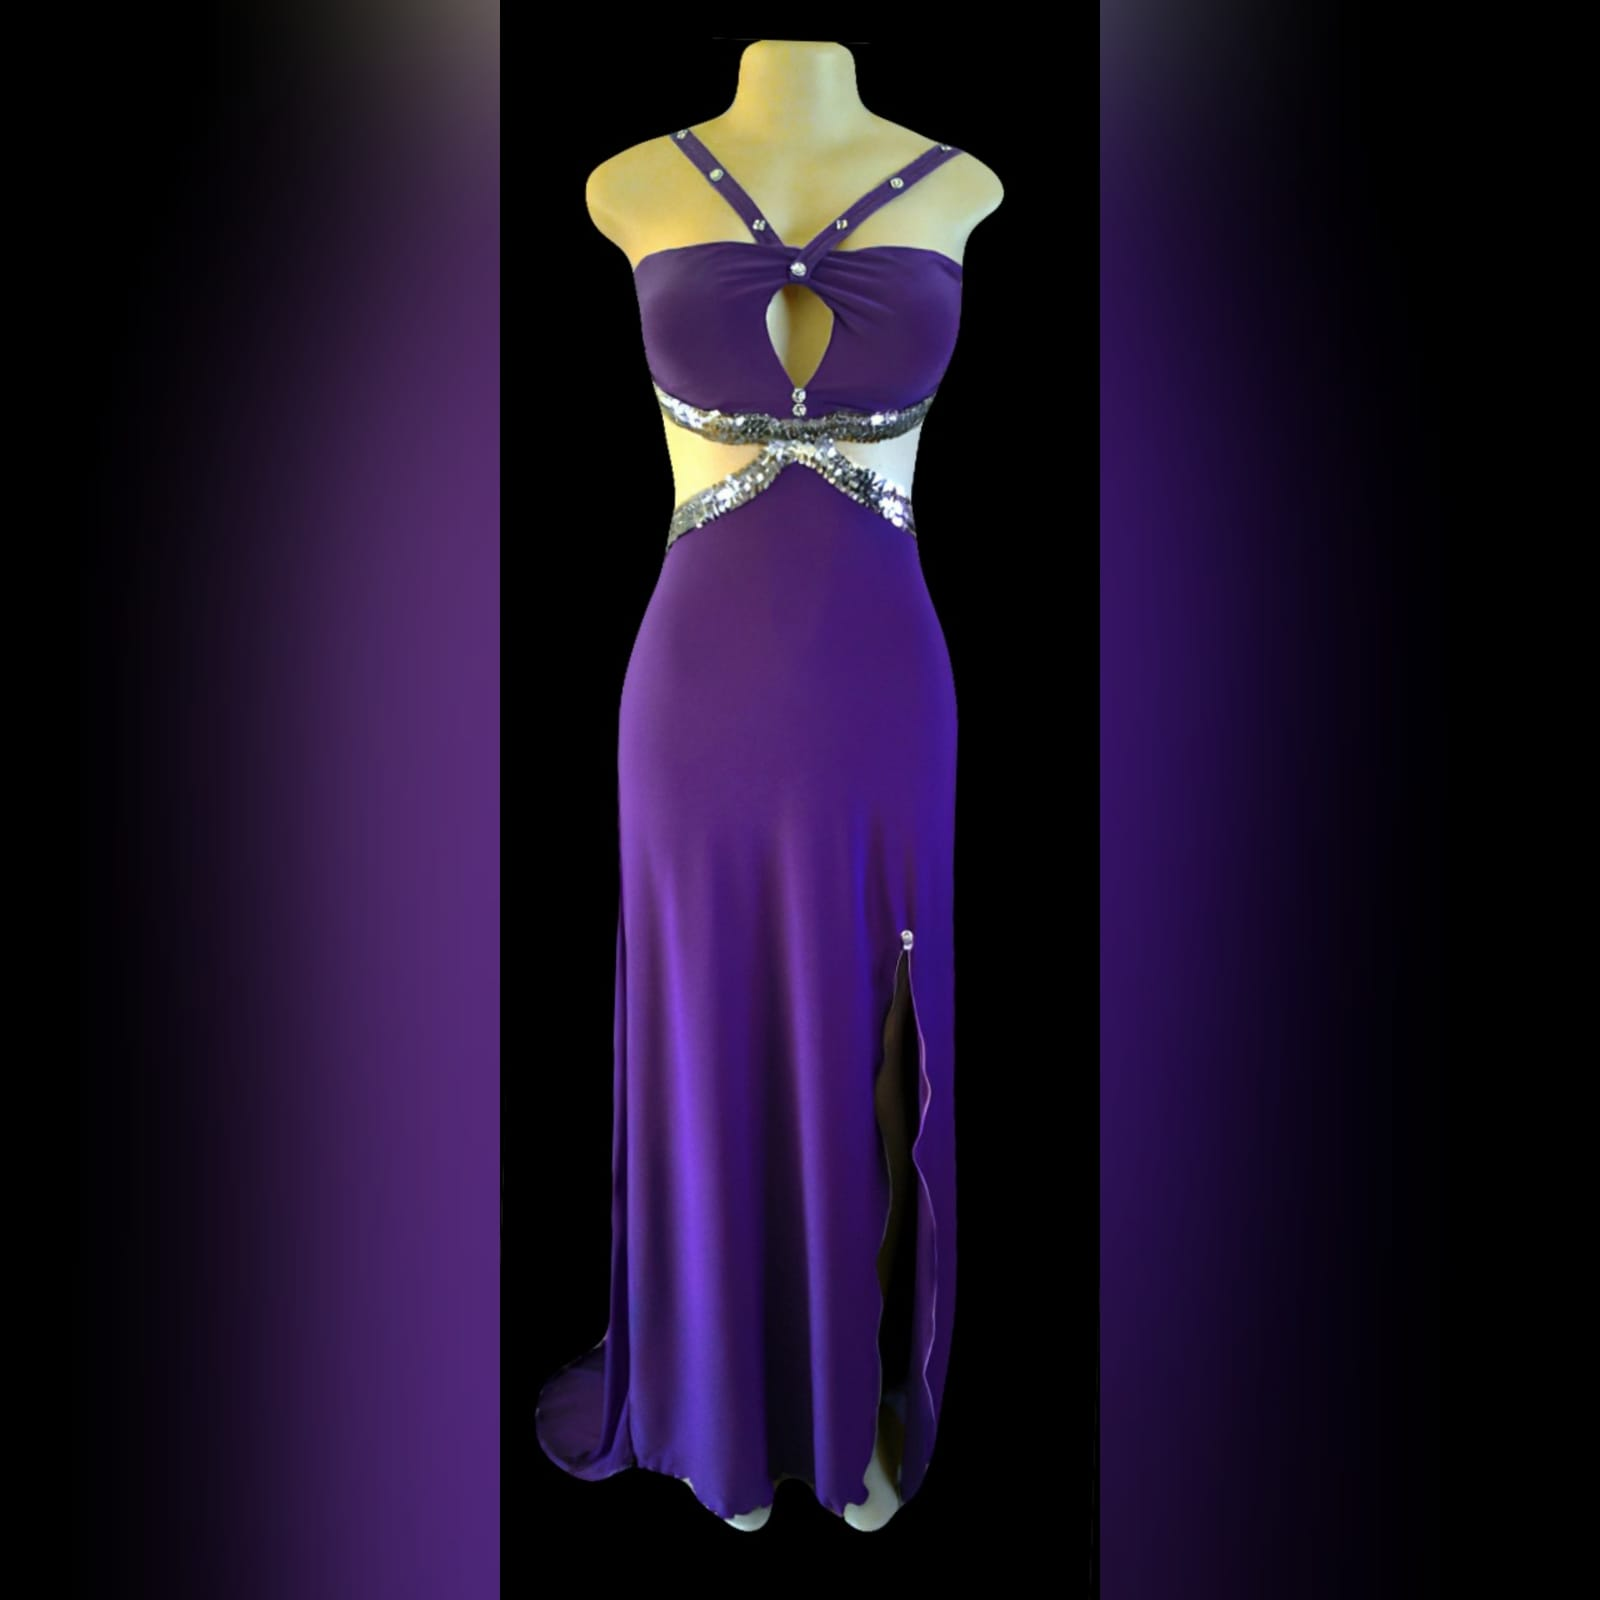 Purple long sexy prom dress 5 purple long sexy prom dress, with side tummy openings, cleavage opening, open low back and a slit, all detailed with silver sequins.